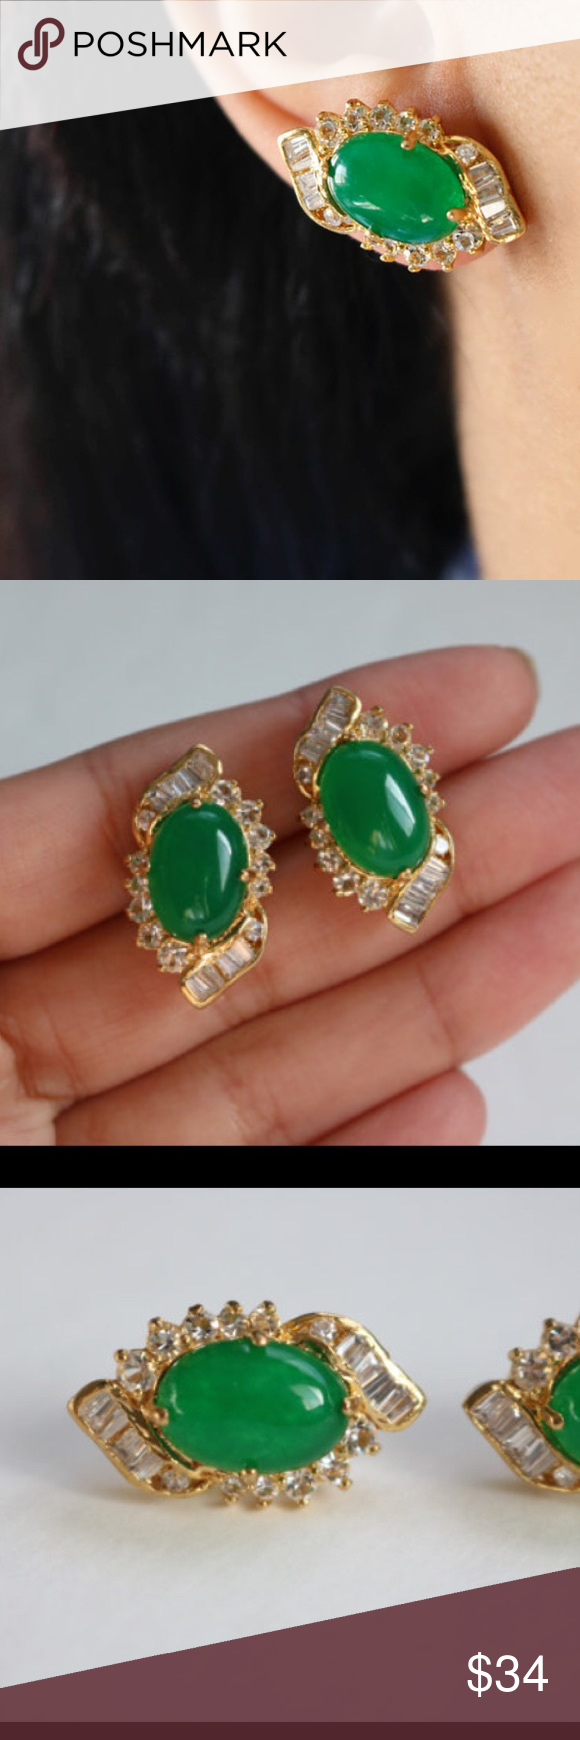 "Sparkly Crystal Green Earrings. Sparkly Crystal Gold Earrings.  1"" X 0.5""     Material:18k gold plated Jewelry Earrings"